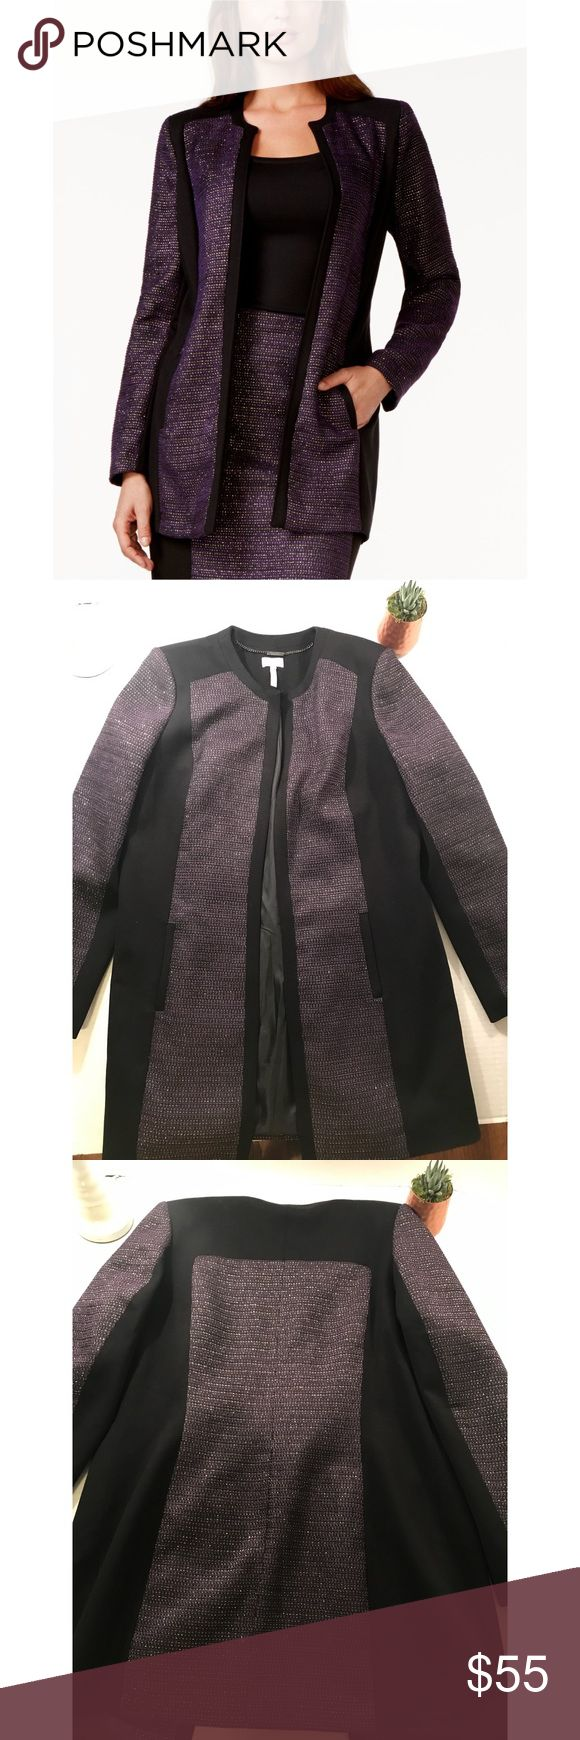 Laundry- Shelli Segal Tweed Career Jacket Sz 12 Laundry by Shelli Segal Metallic Tweed Bloucle Career Jacket Black/Purple Sz 12  Perfect Condition.  Measurements are all laying flat: Length 34 Bust 21 Sleeve Length 27 sku#S5 Laundry By Shelli Segal Jackets & Coats